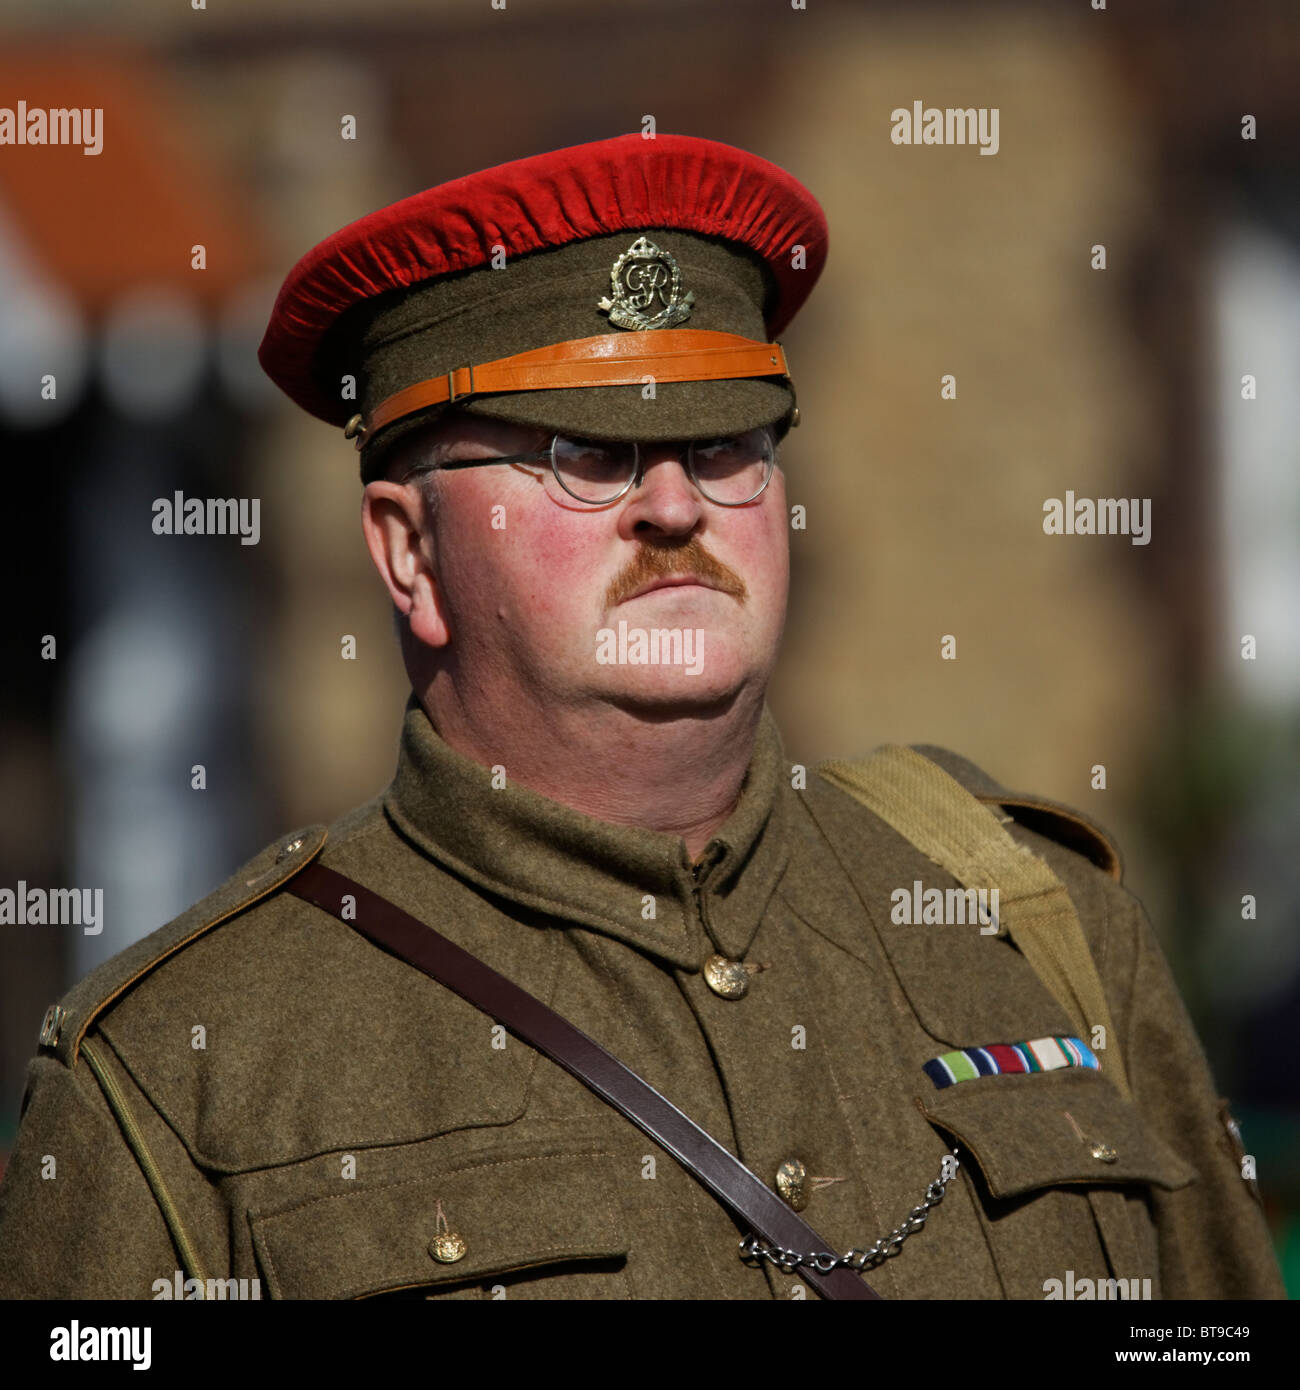 1940s Red Cap British Army Royal Military Police Officer